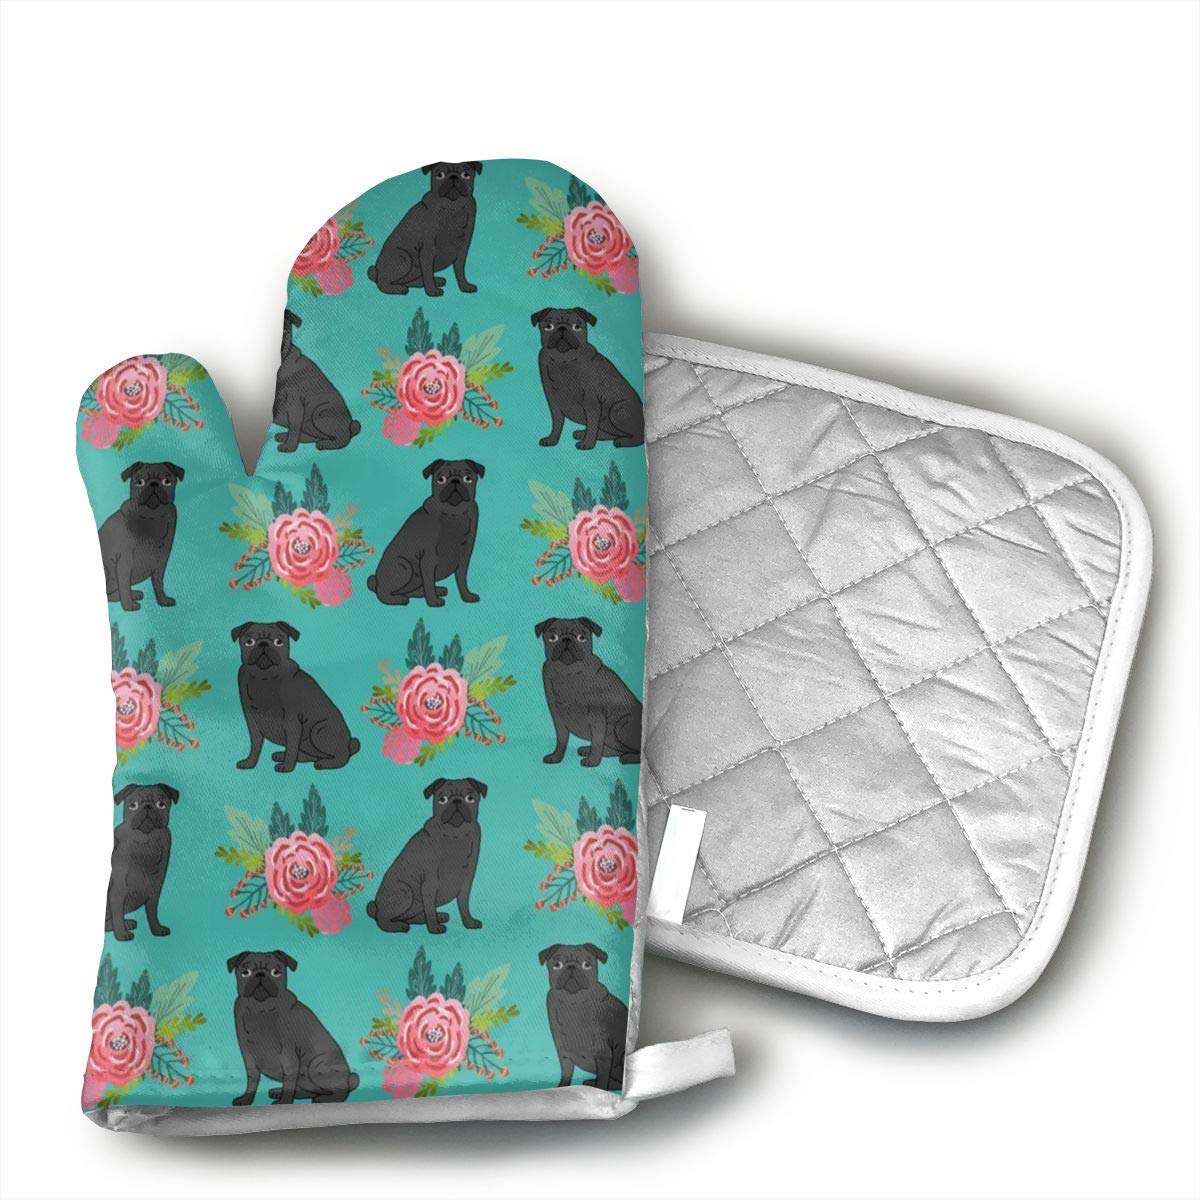 Wiqo9 Black Pug Dog Floral Oven Mitts and Pot Holders Kitchen Mitten Cooking Gloves,Cooking, Baking, BBQ.